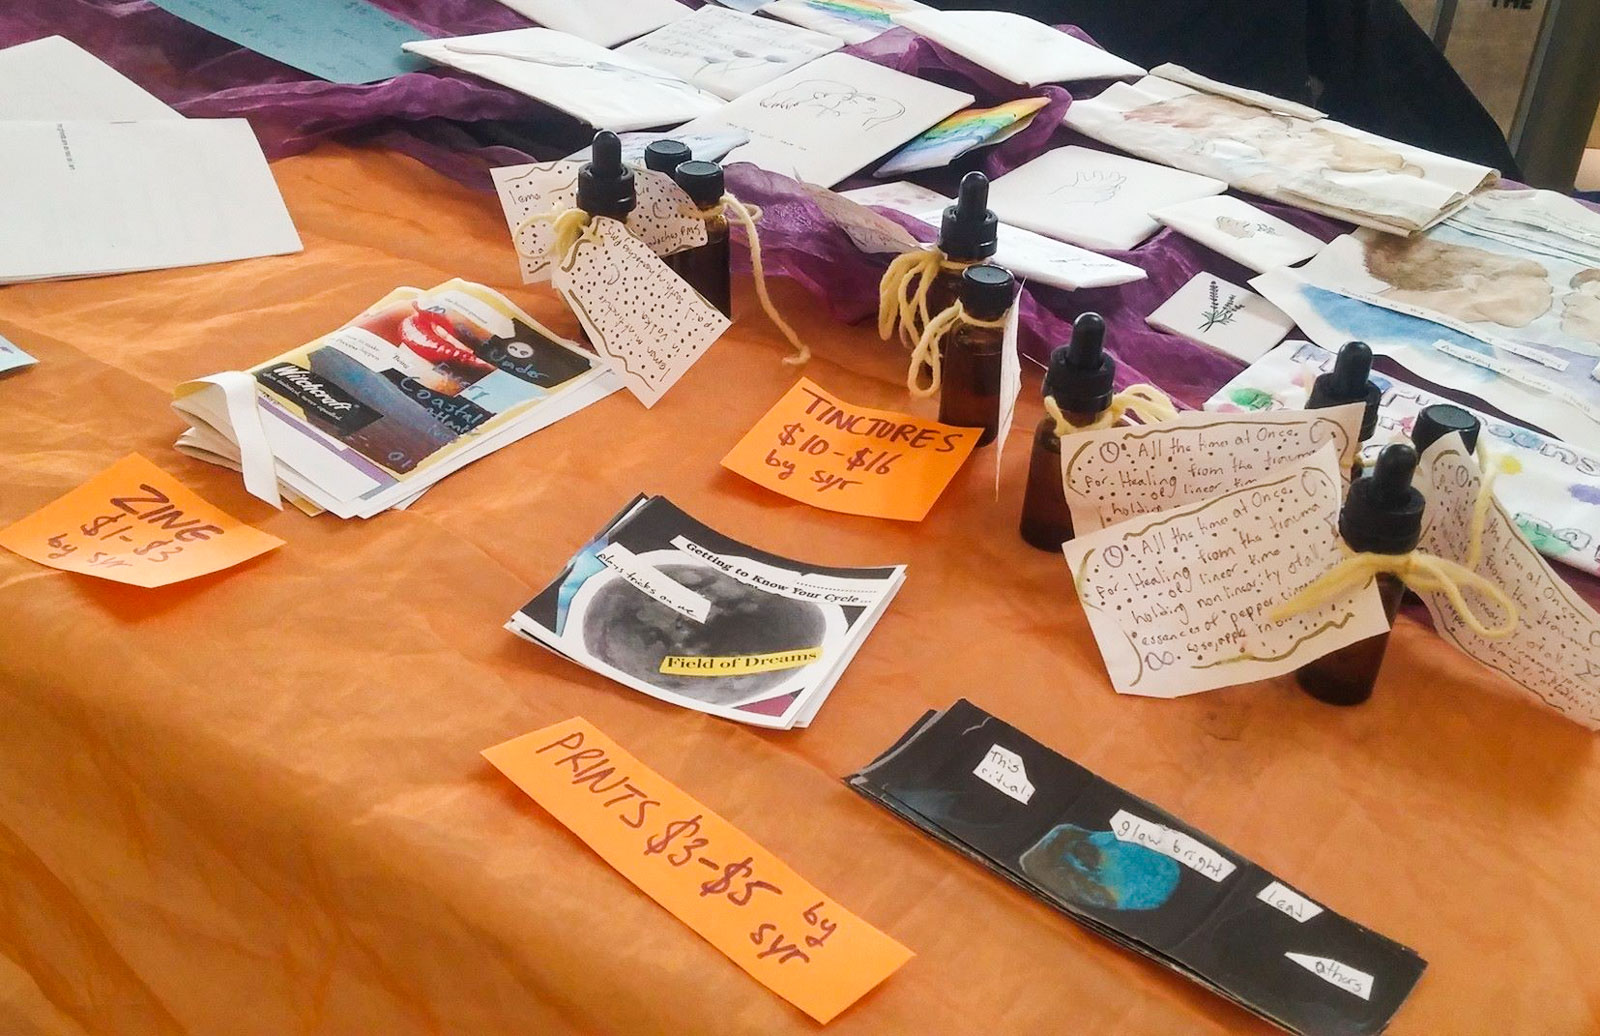 Items being sold at the zine fair.